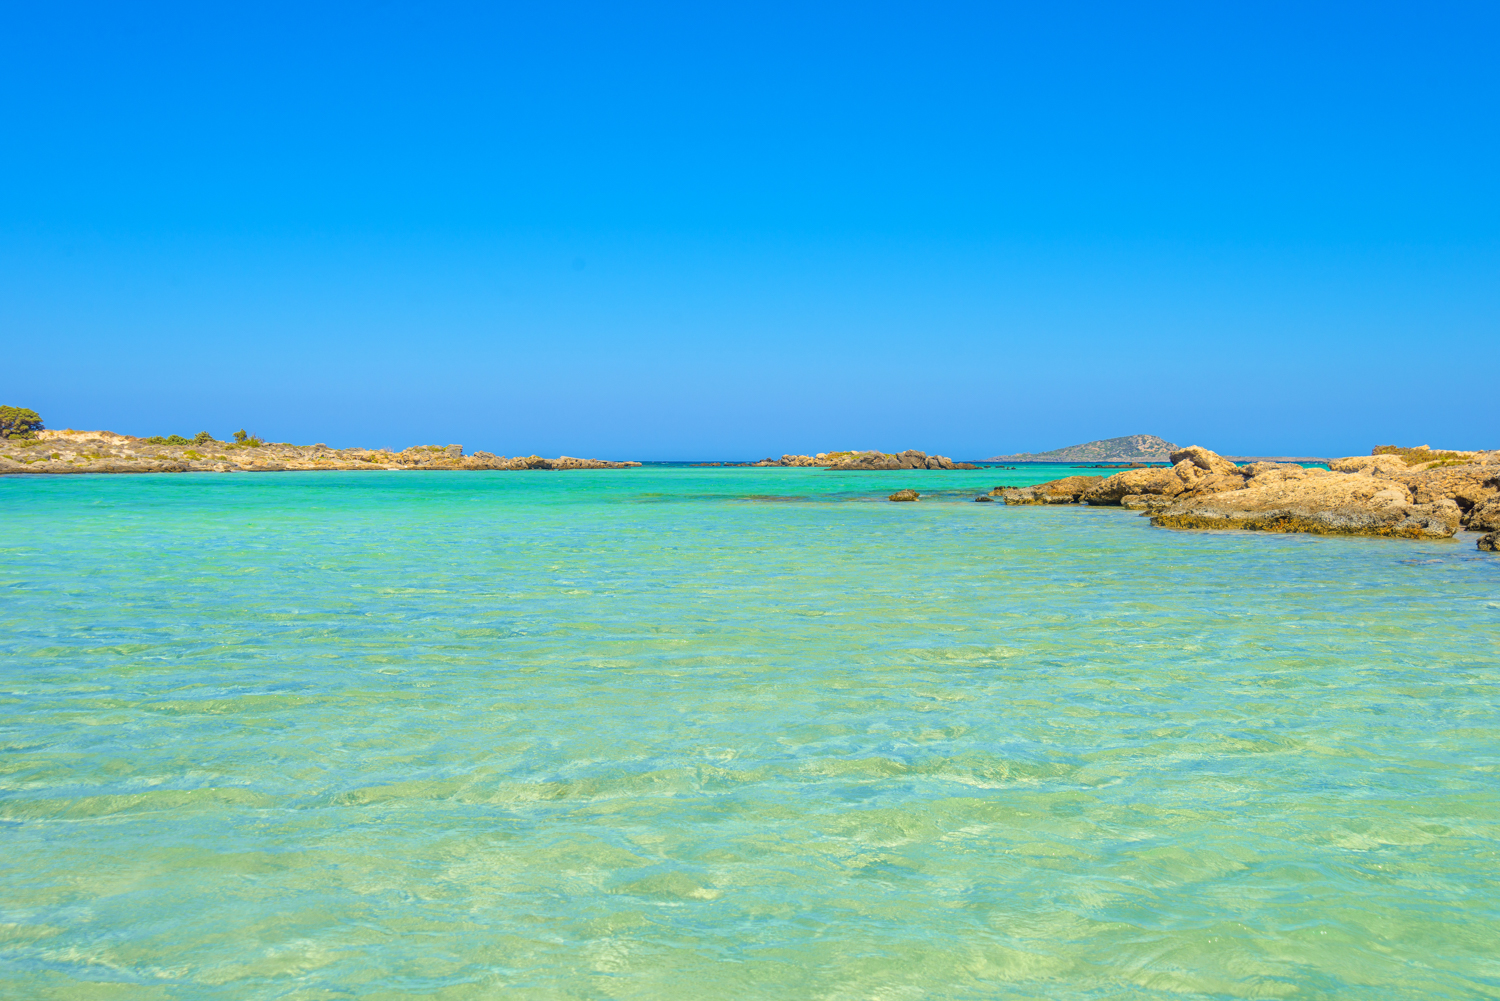 Elafonisi, one of the most famous beaches in the world, Crete, G